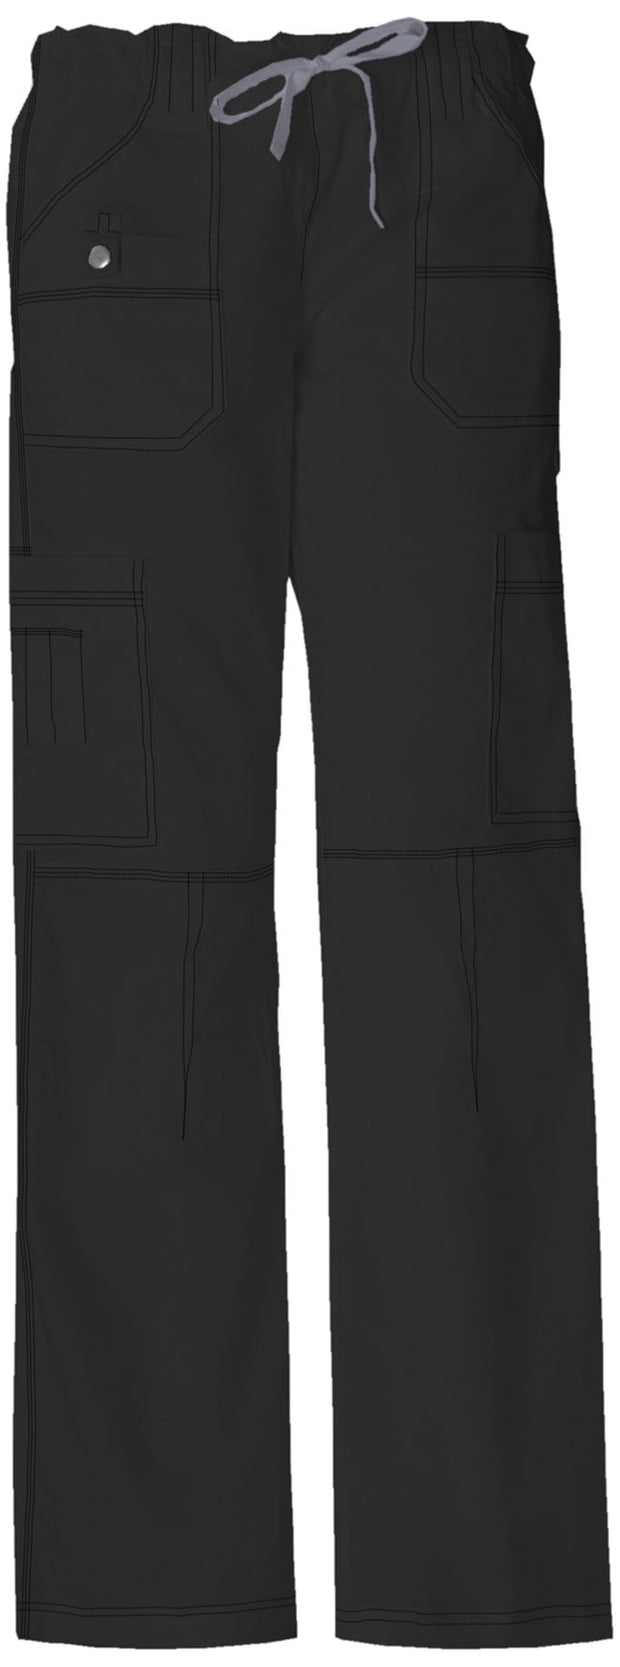 857455 Dickies Gen Flex Womens Cargo Scrubs Pant - Infectious Clothing Company